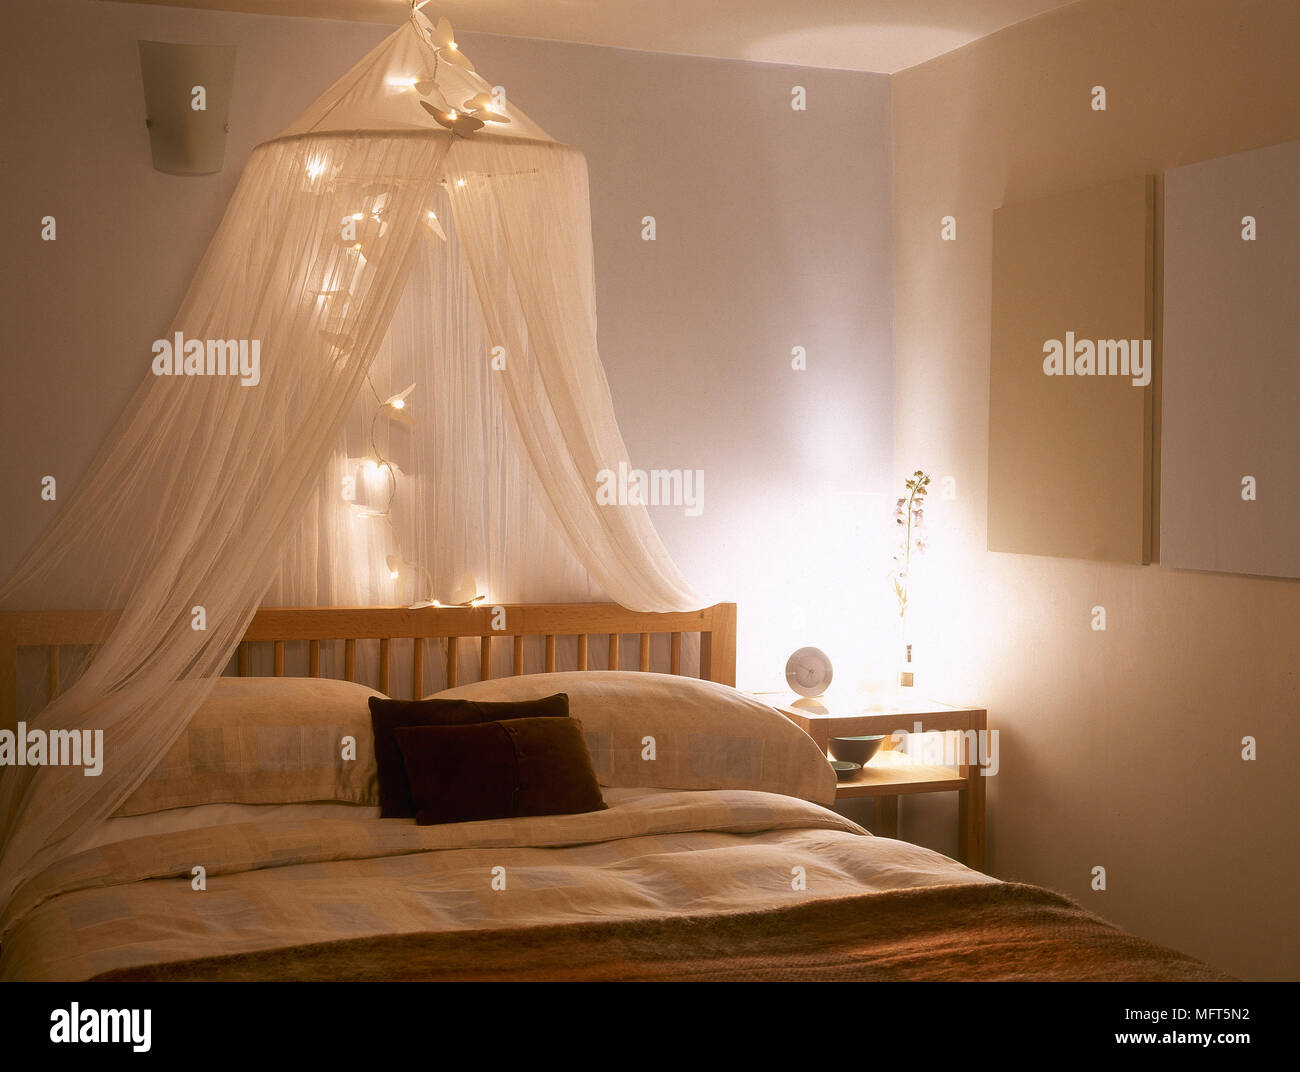 - Double Bed Canopy High Resolution Stock Photography And Images - Alamy